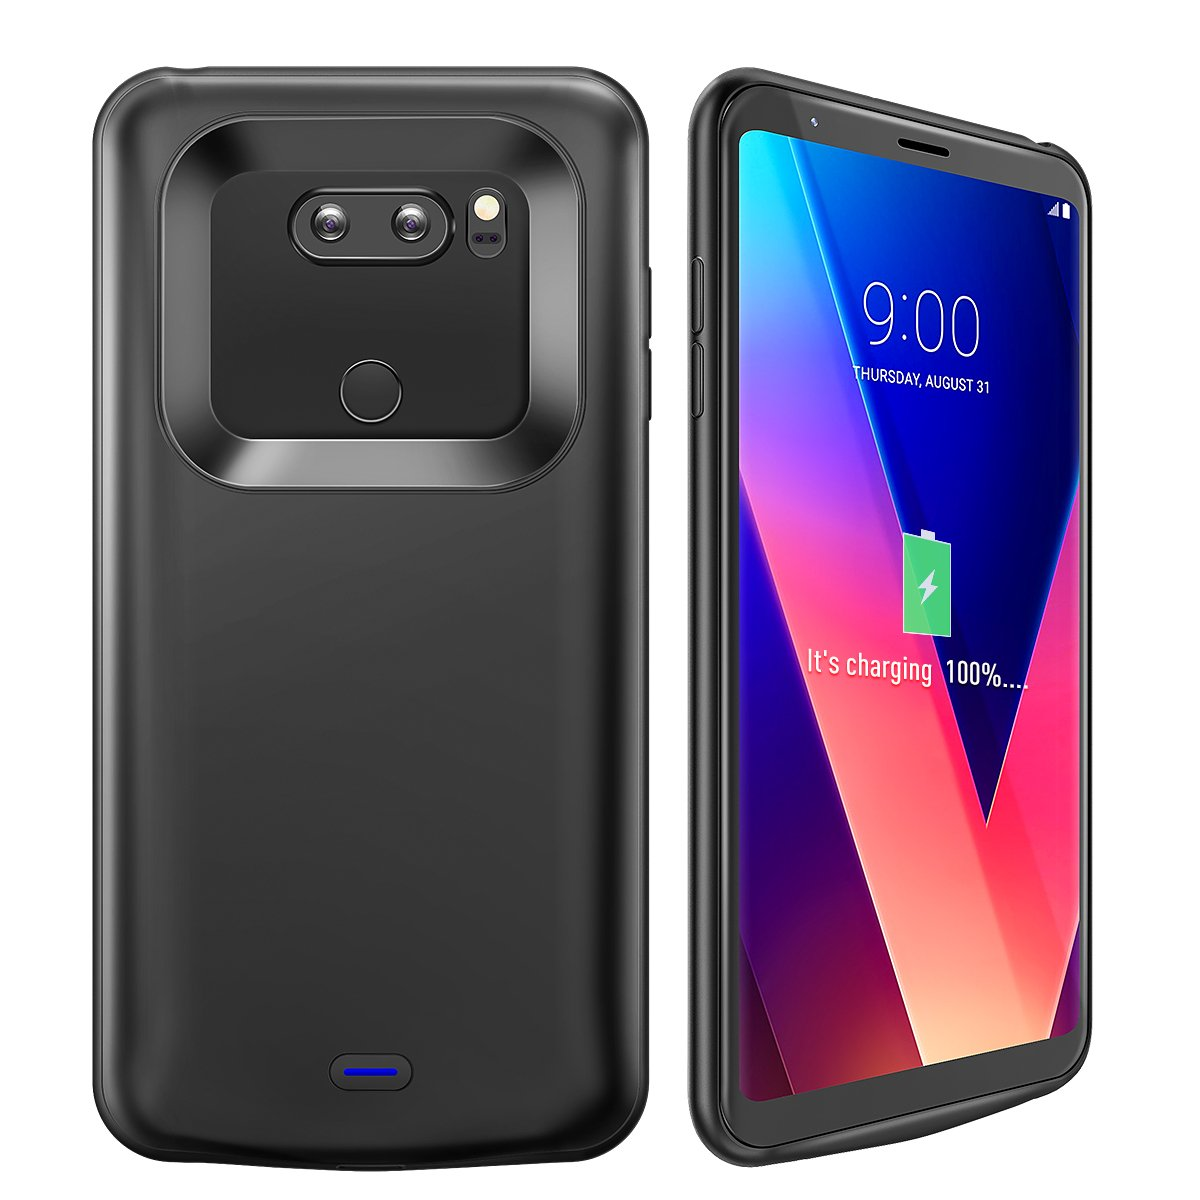 LG V30 Battery Charger Case, Newdery 4200mAh Slim Portable Power Charging Case with Soft Edge Full Protection, Extended Battery Juice Pack Cover [USB - C Input] for LG V30/V30 Plus/V30S/V35/V35 ThinQ